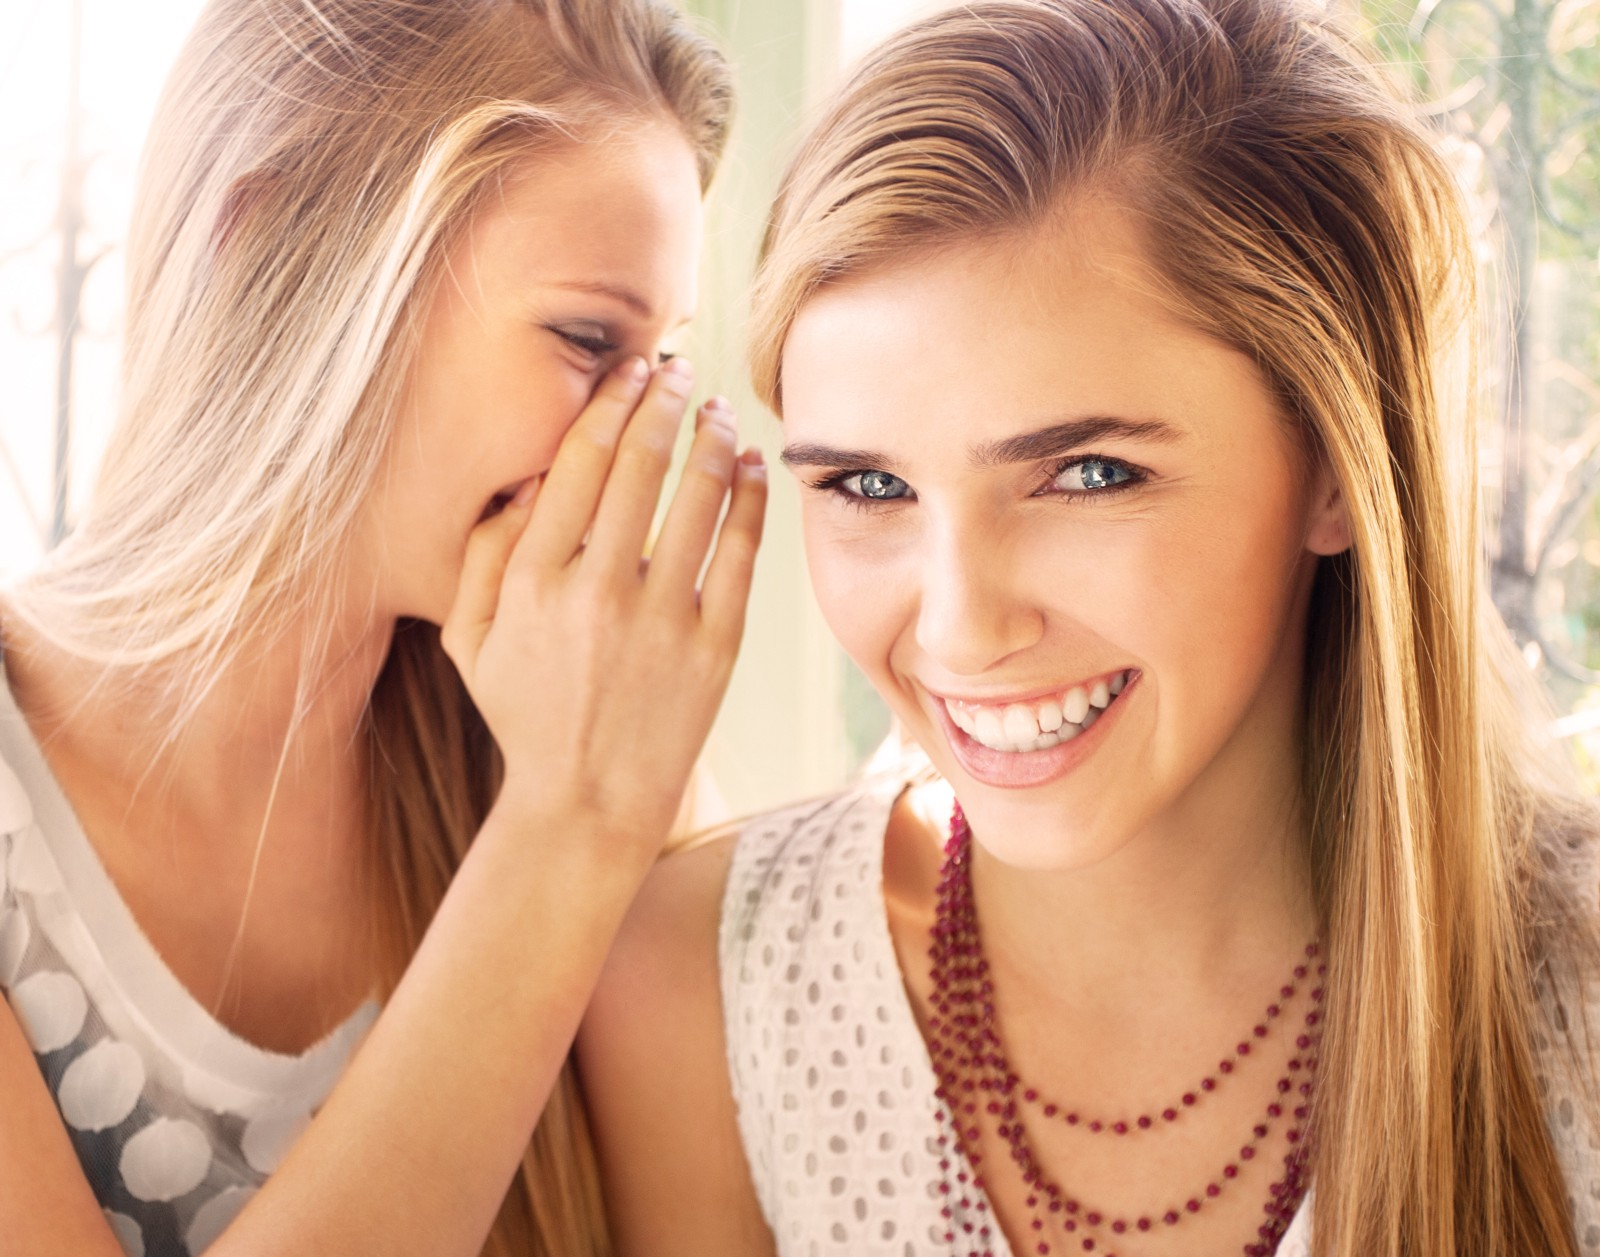 ... if you have a severe sickness like the flu or an eye infection, it is safest to throw away any makeup you used during that time to avoid reinfection.